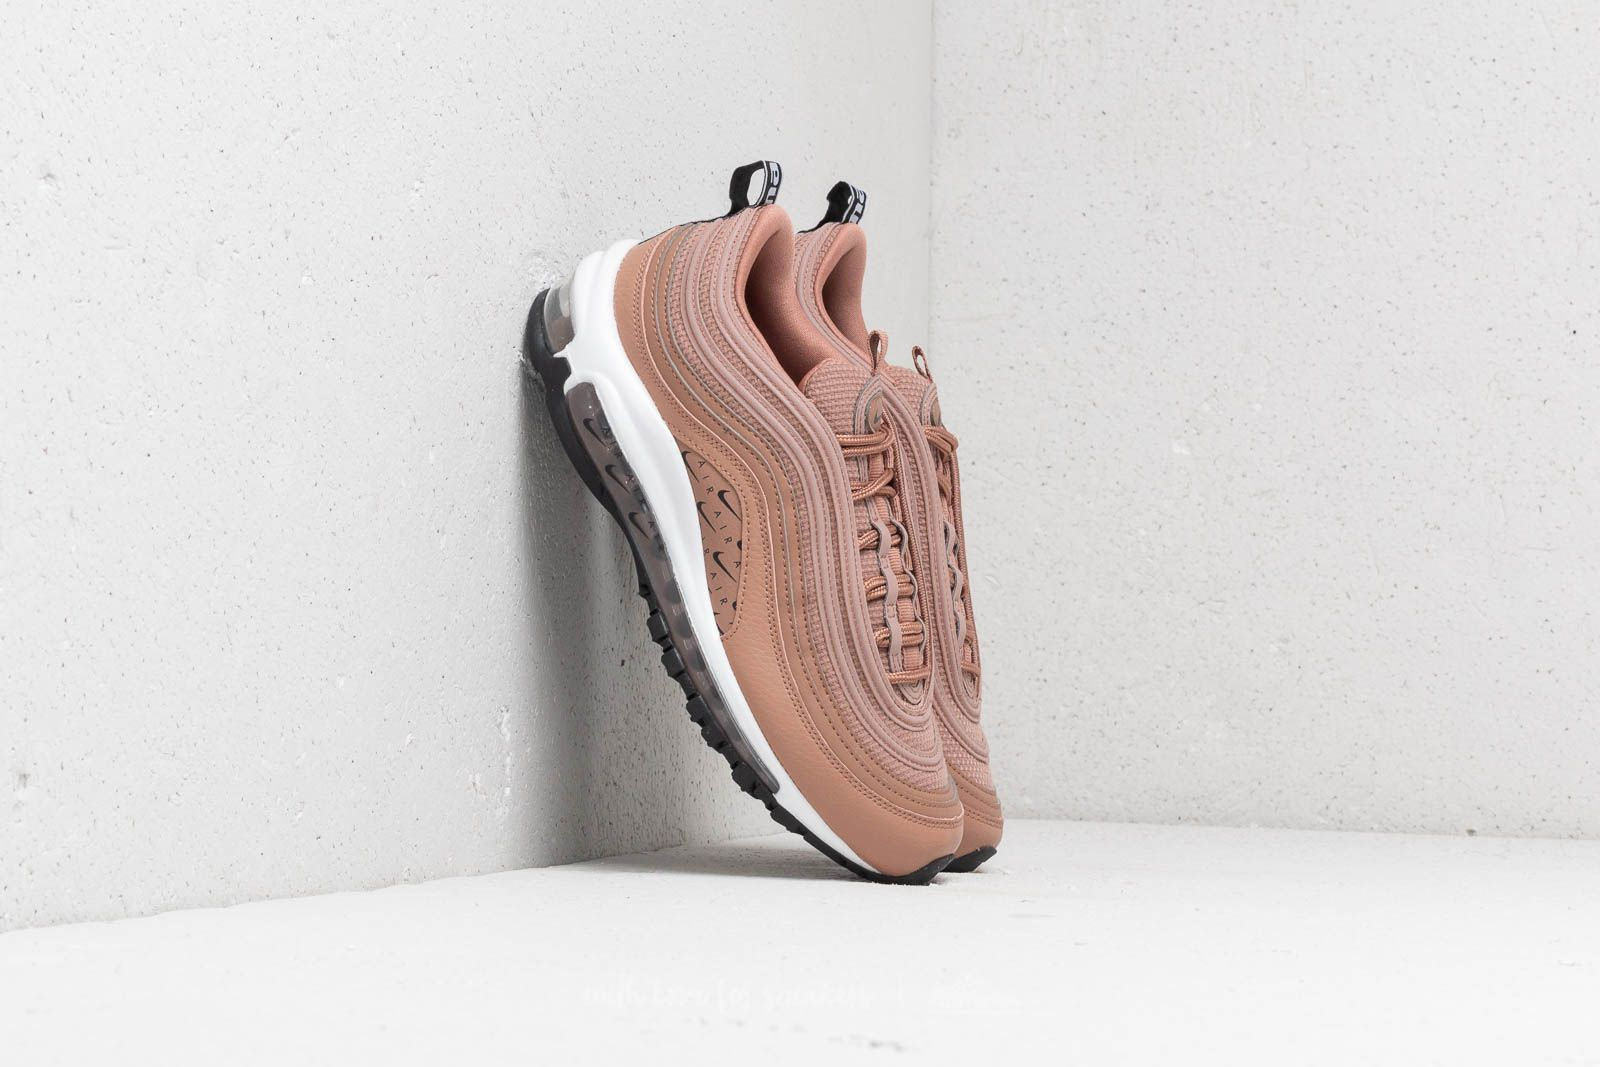 hot sale online 8ddb2 d7c0d Nike W Air Max 97 LX Desert Dust  Desert Dust-Black at a great